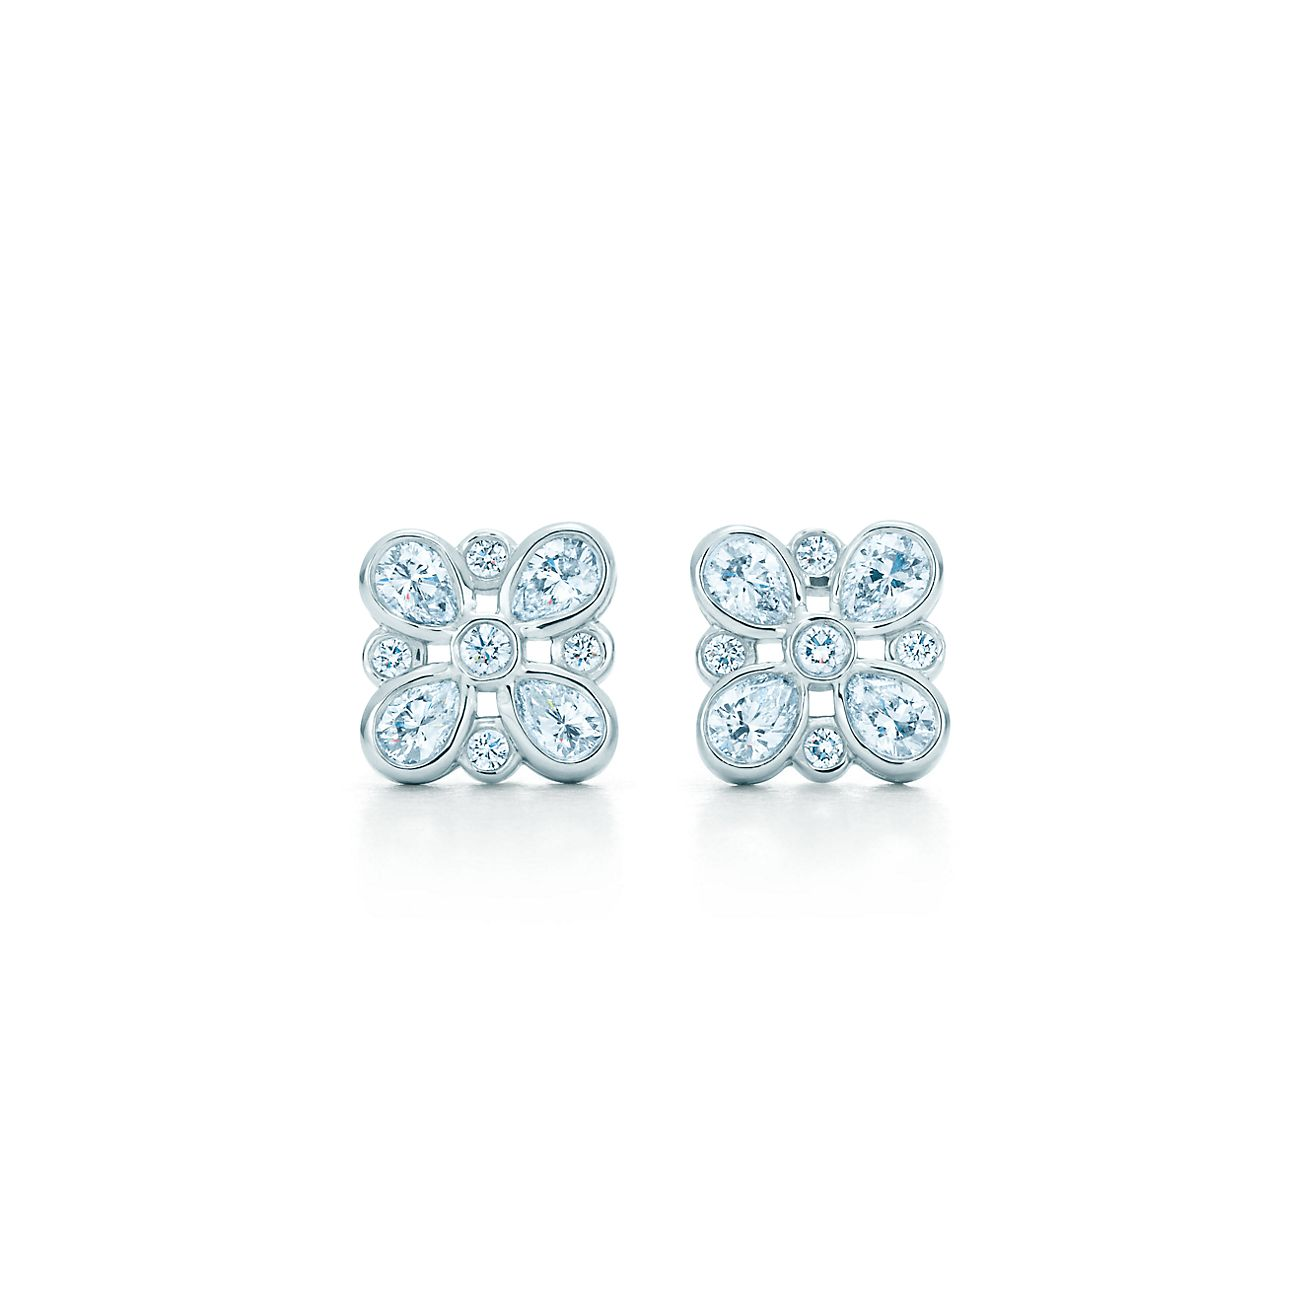 Buying your baby's first diamond earrings can be an exciting but nerve-racking experience that requires a little bit of forethought. Regardless of allergies or cultural values, piercing ears at a young age is a difficult decision, so make sure you consider the important factors without rushing through the process.